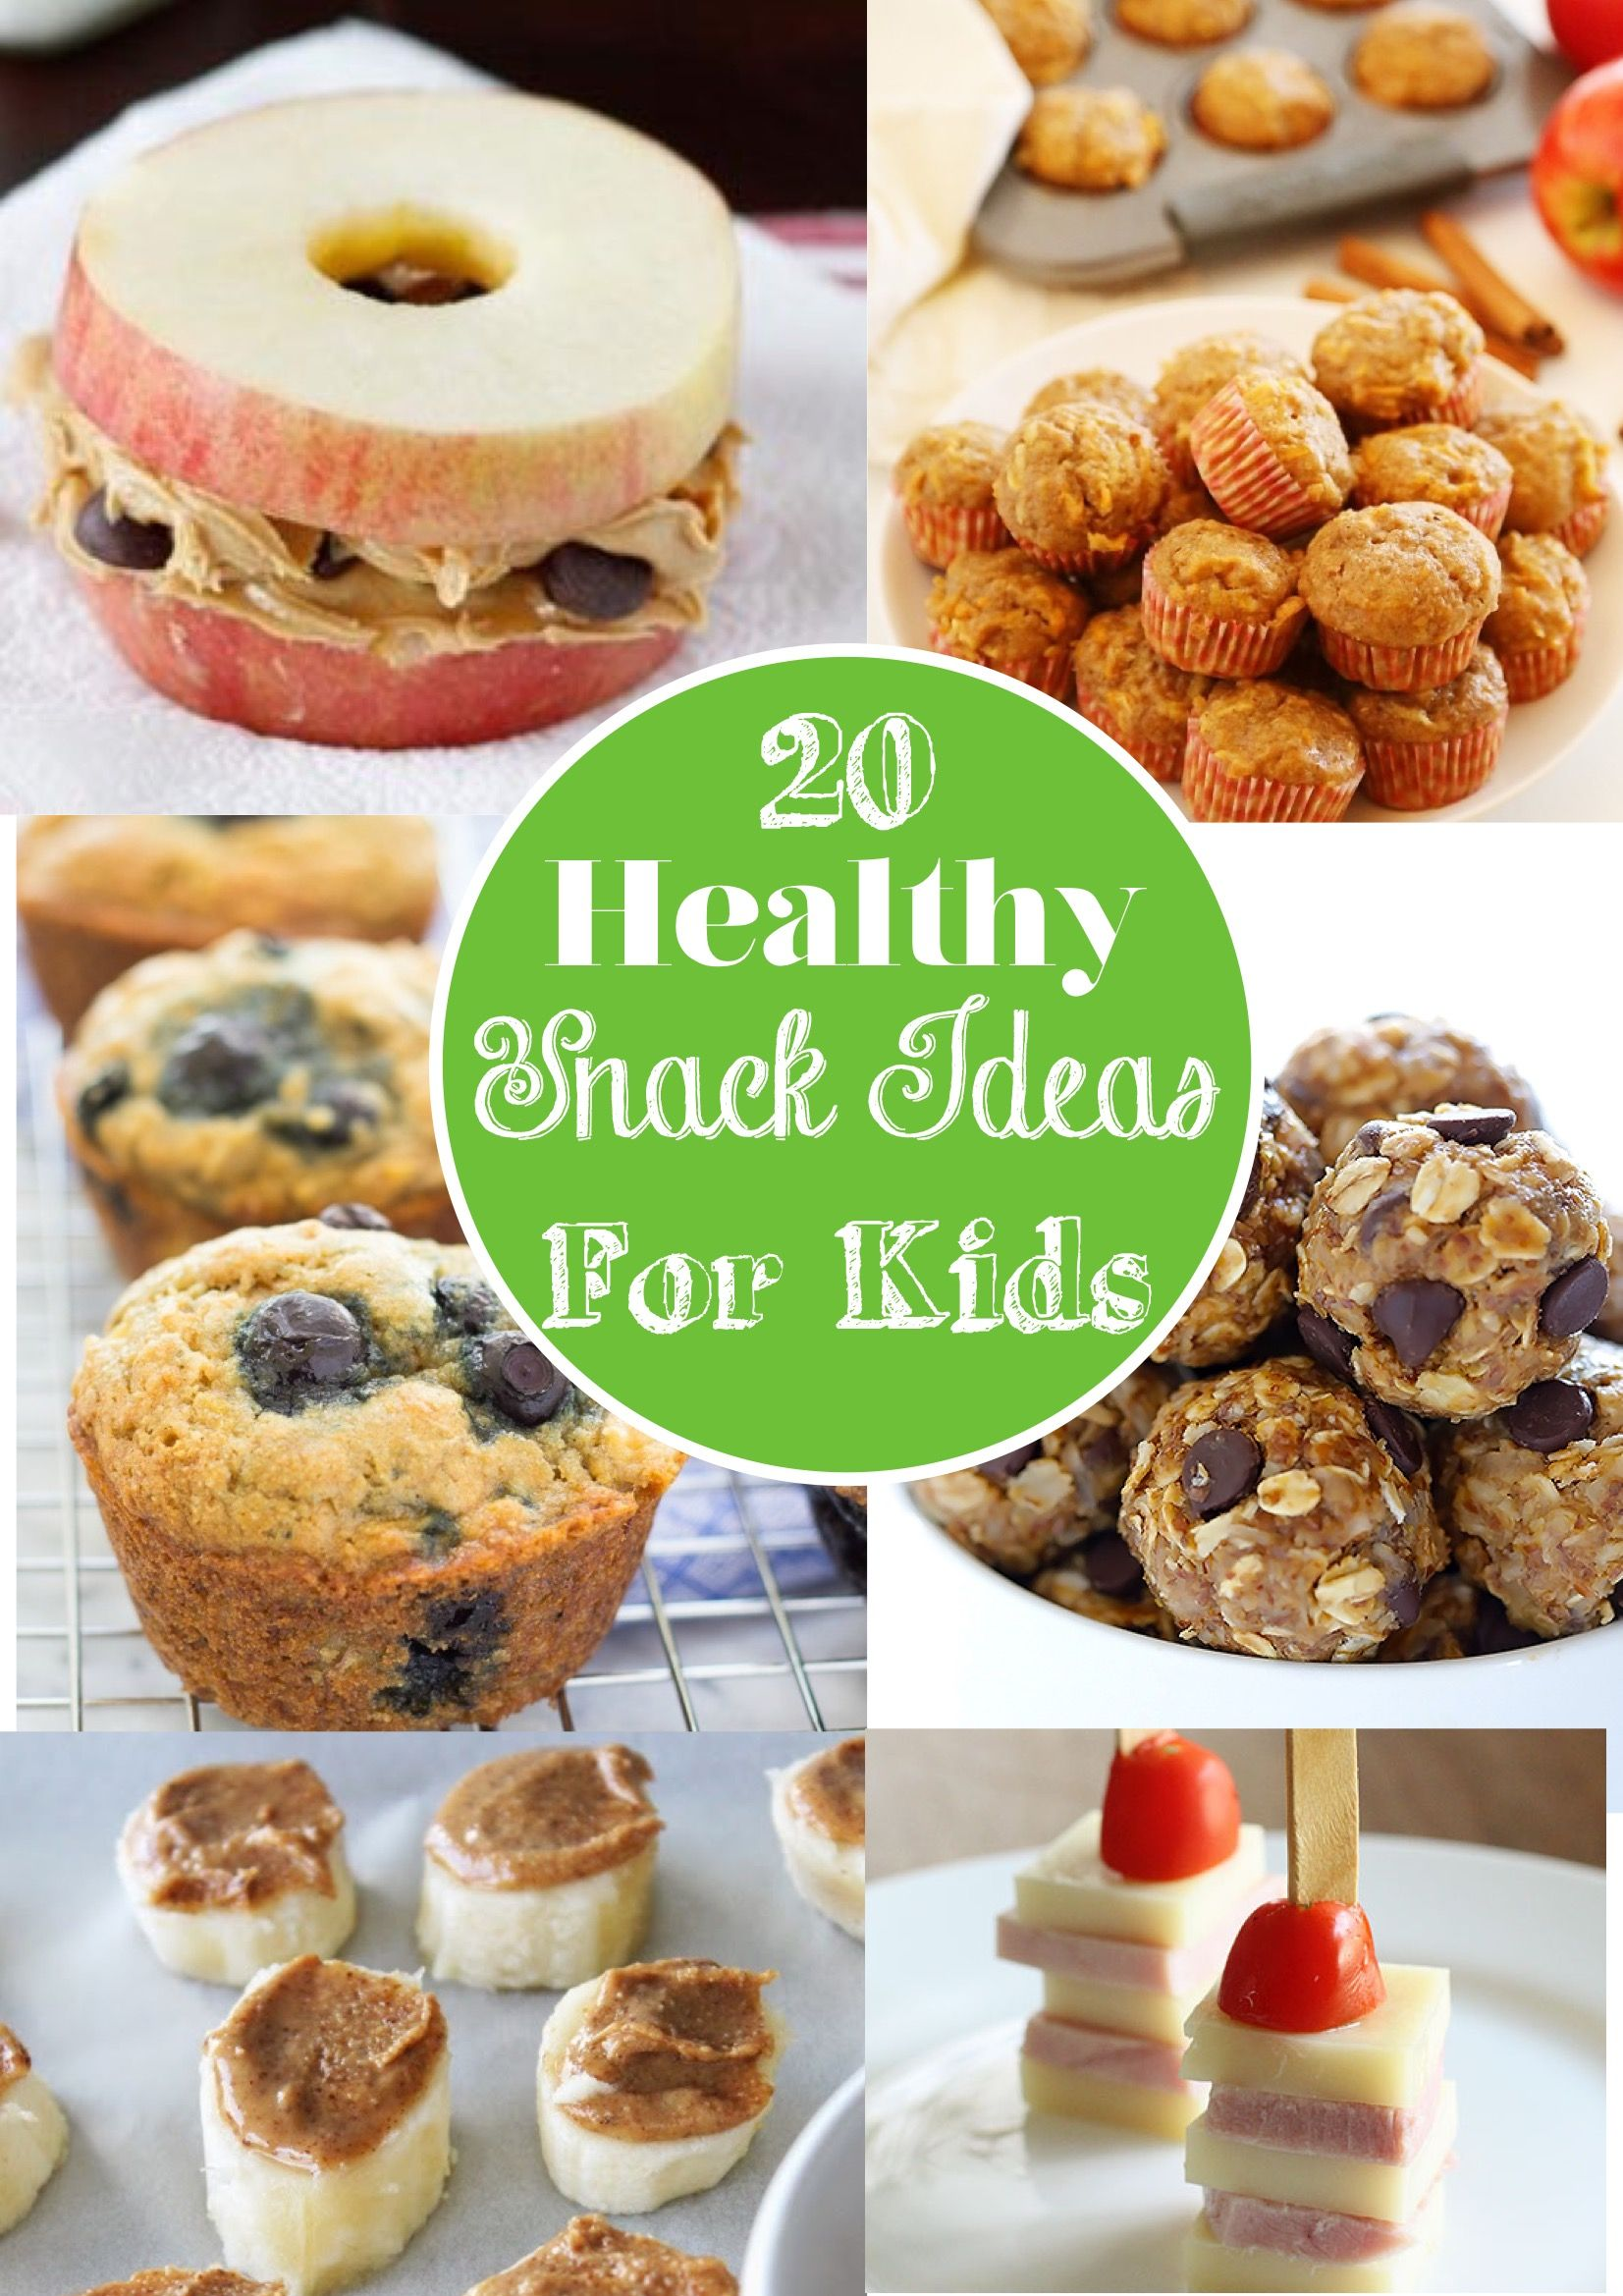 20 Amazing And Healthy Snack Ideas For Kids And Grownups